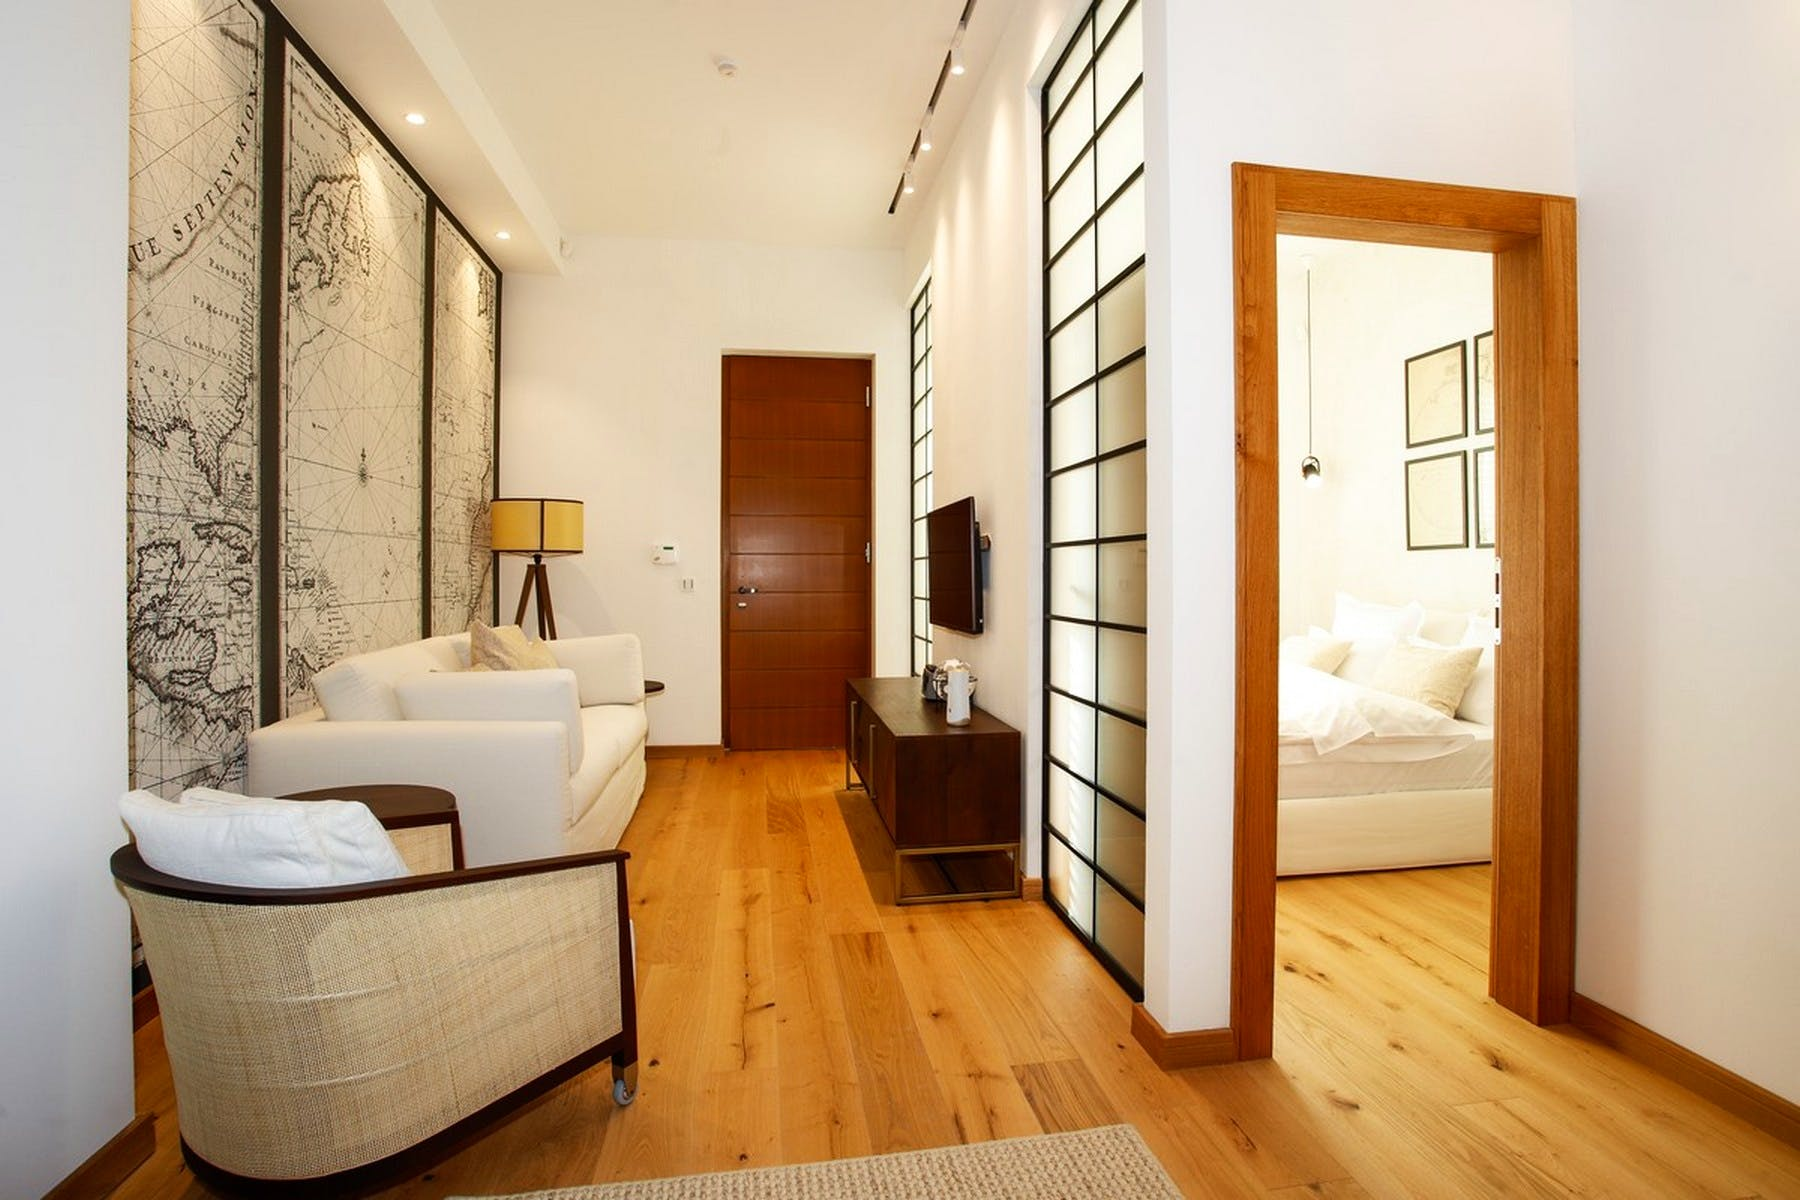 Entrance area to the bedroom